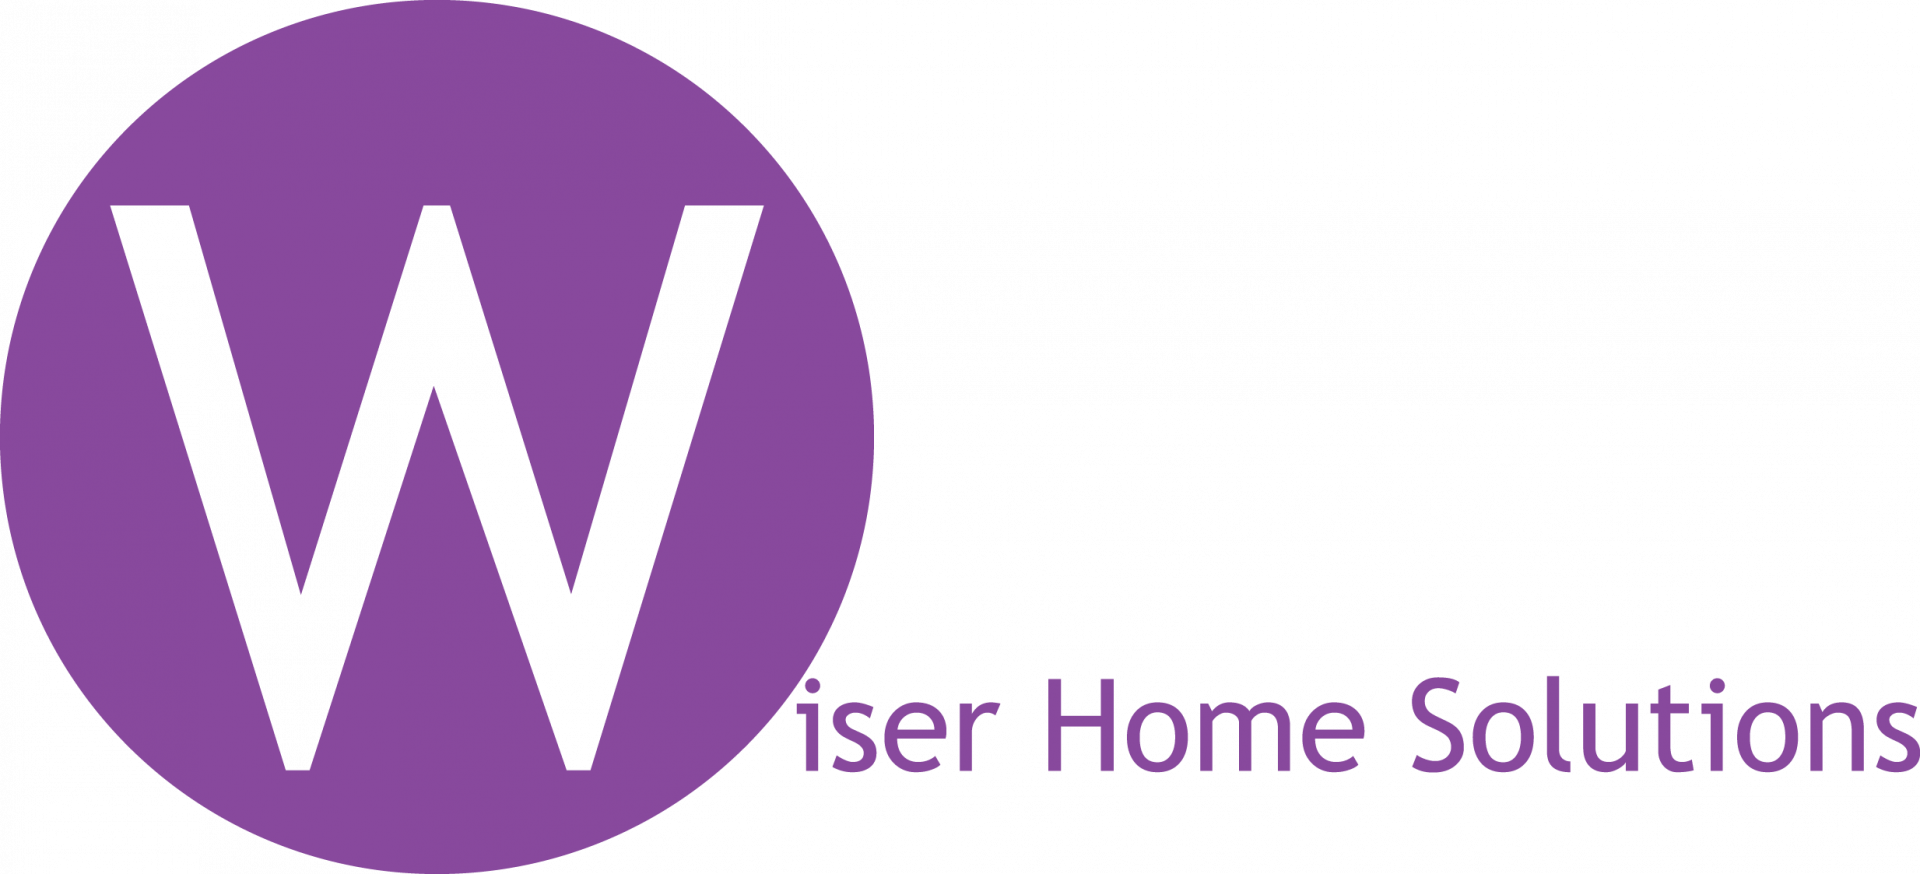 Wiser Home Solutions logo